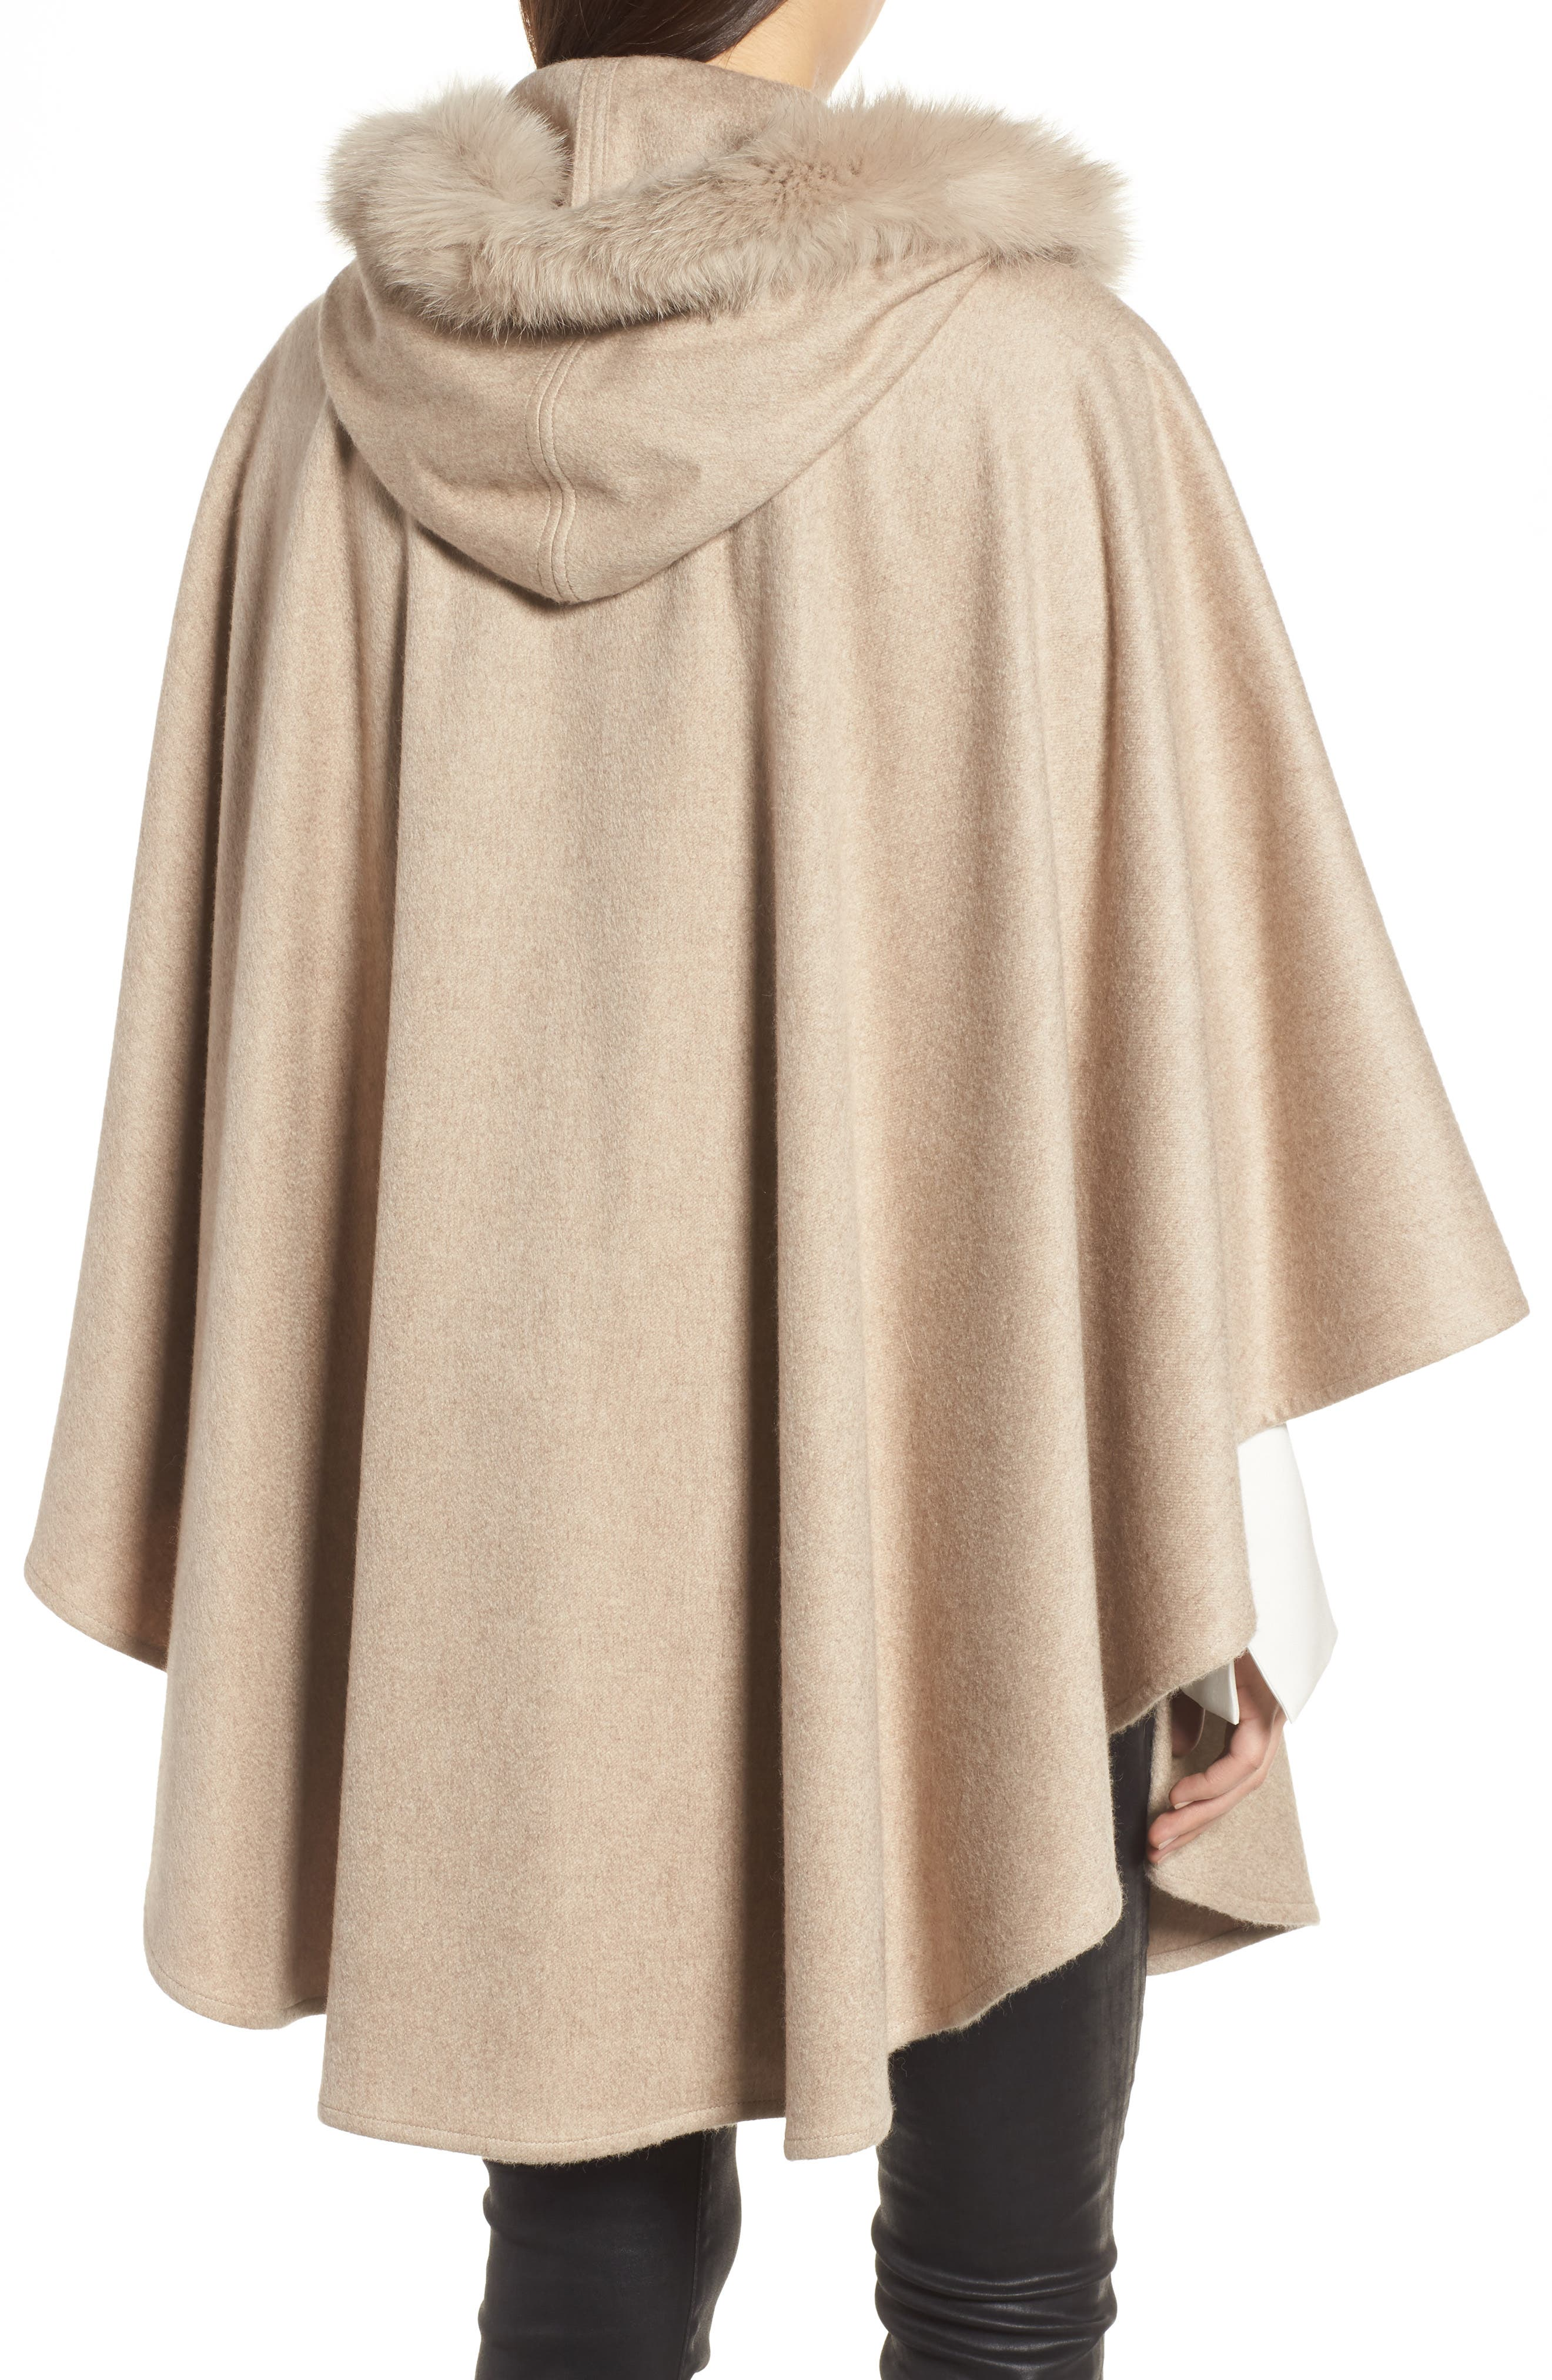 Cashmere Hooded Cape with Genuine Fox Fur Trim,                             Alternate thumbnail 2, color,                             Beige